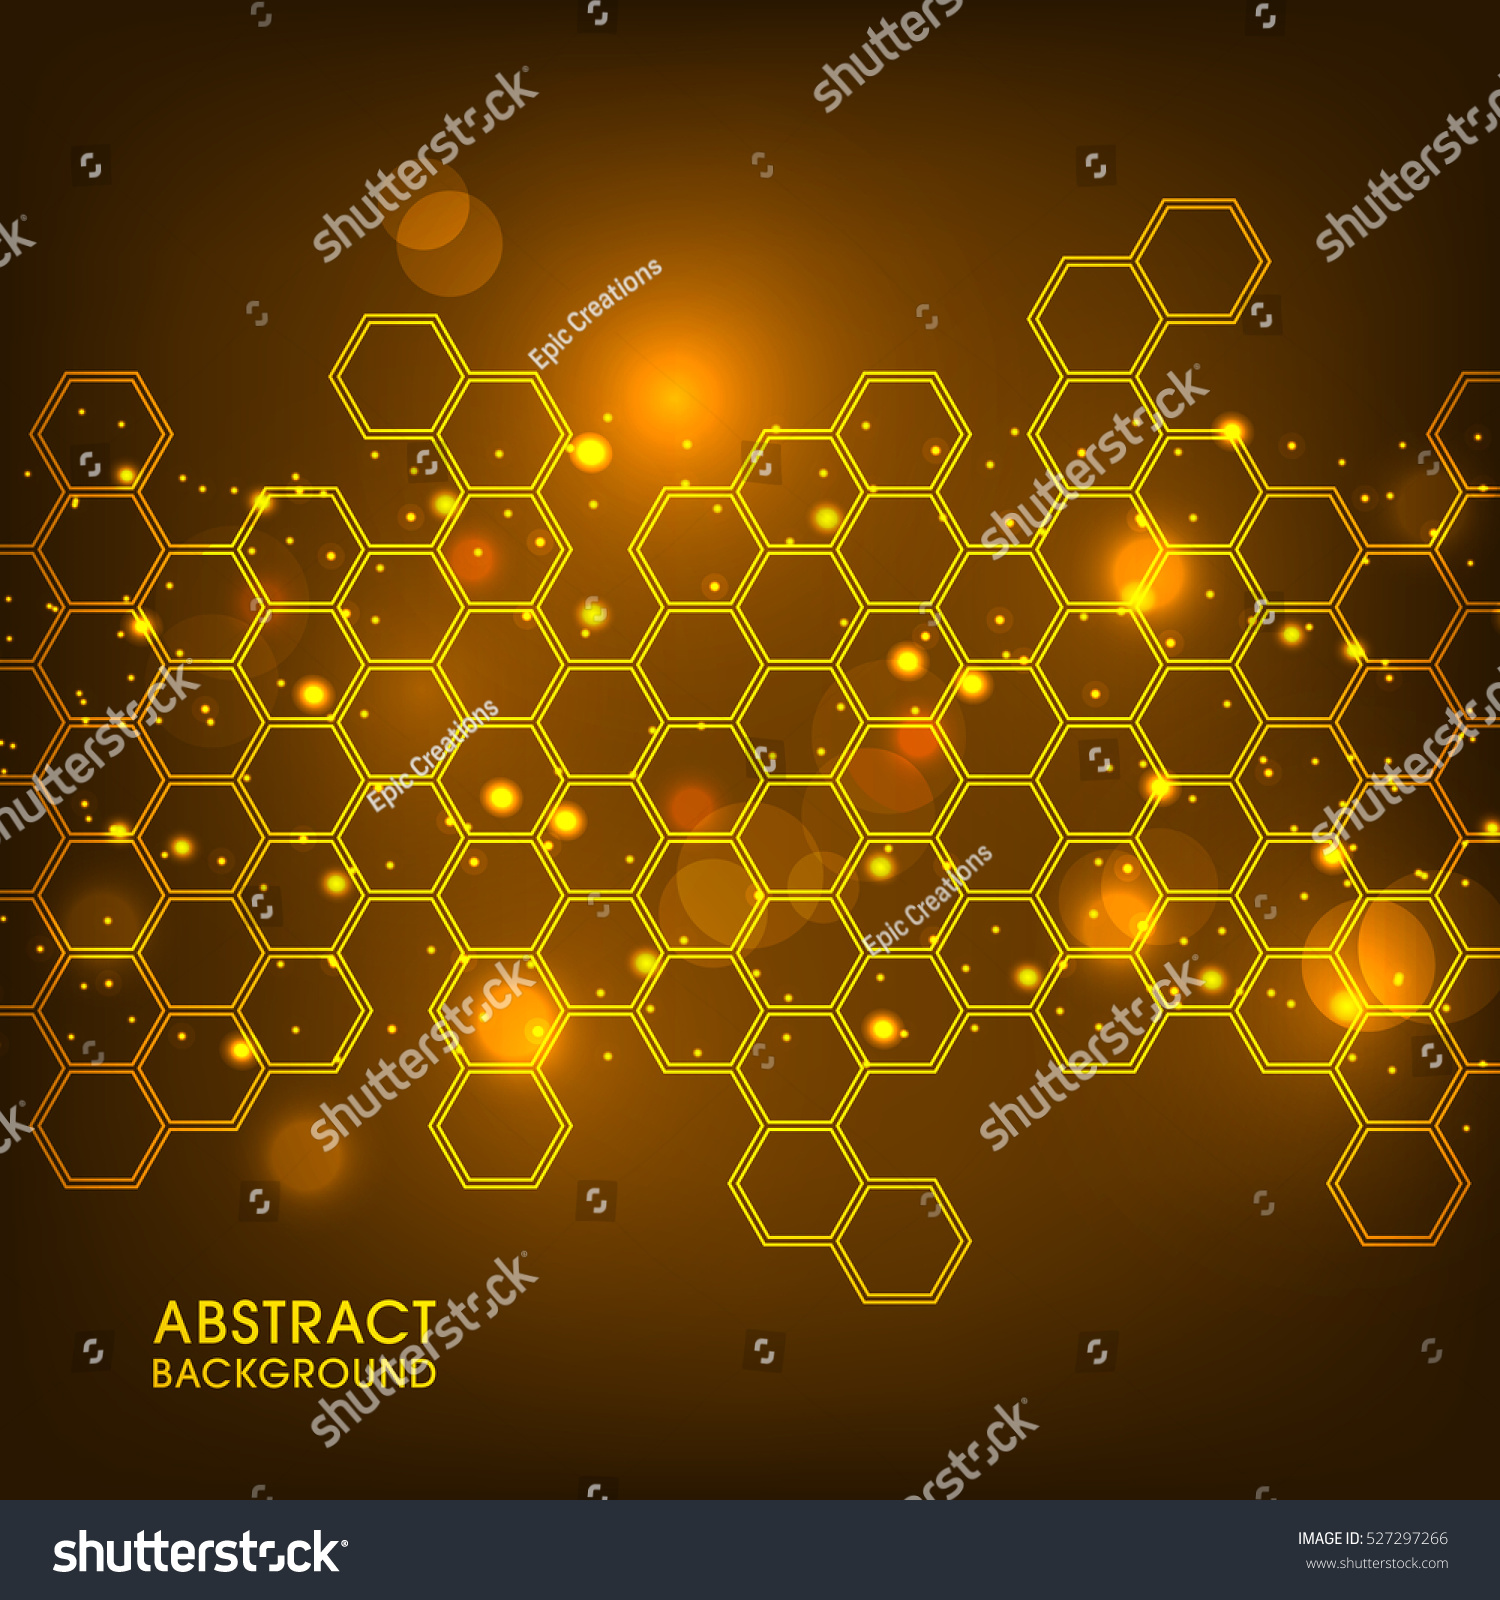 Illustration Honeycomb Abstract Background Stock Vector